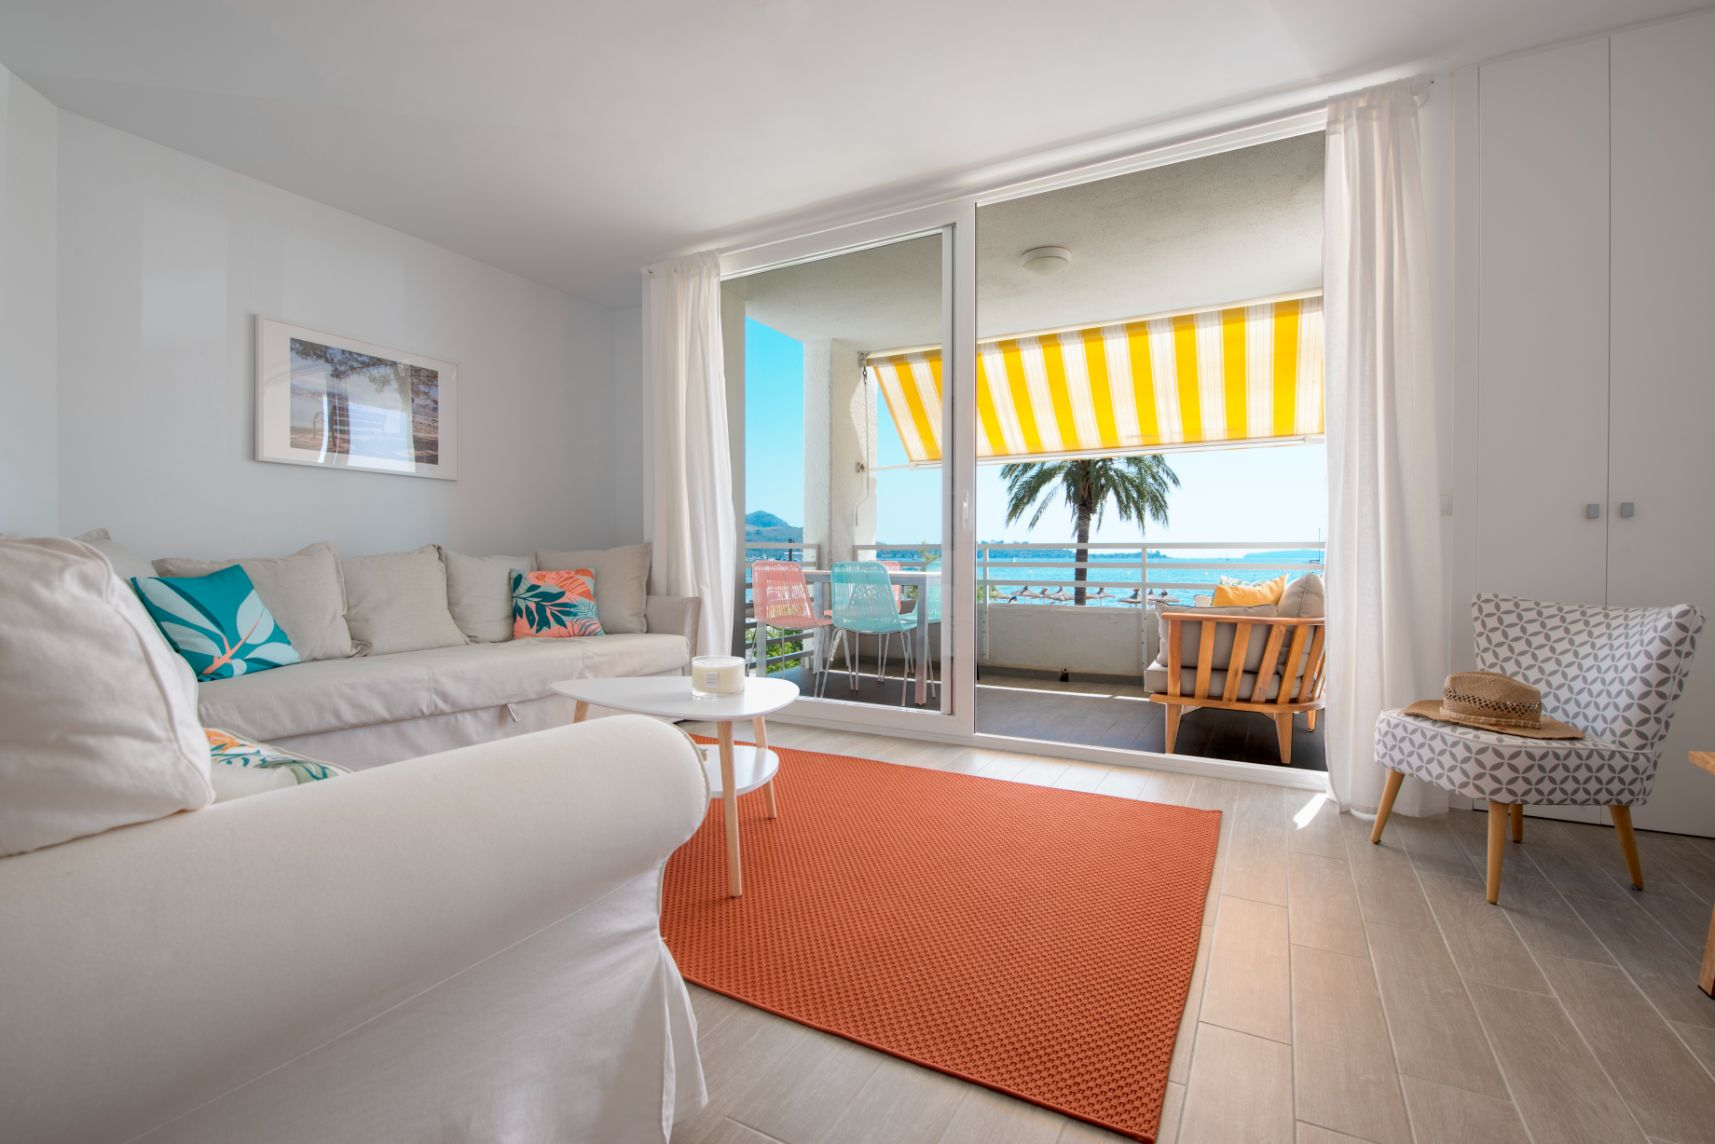 Beautifully furnished front sea view holiday apartment Puerto Pollensa Mallorca